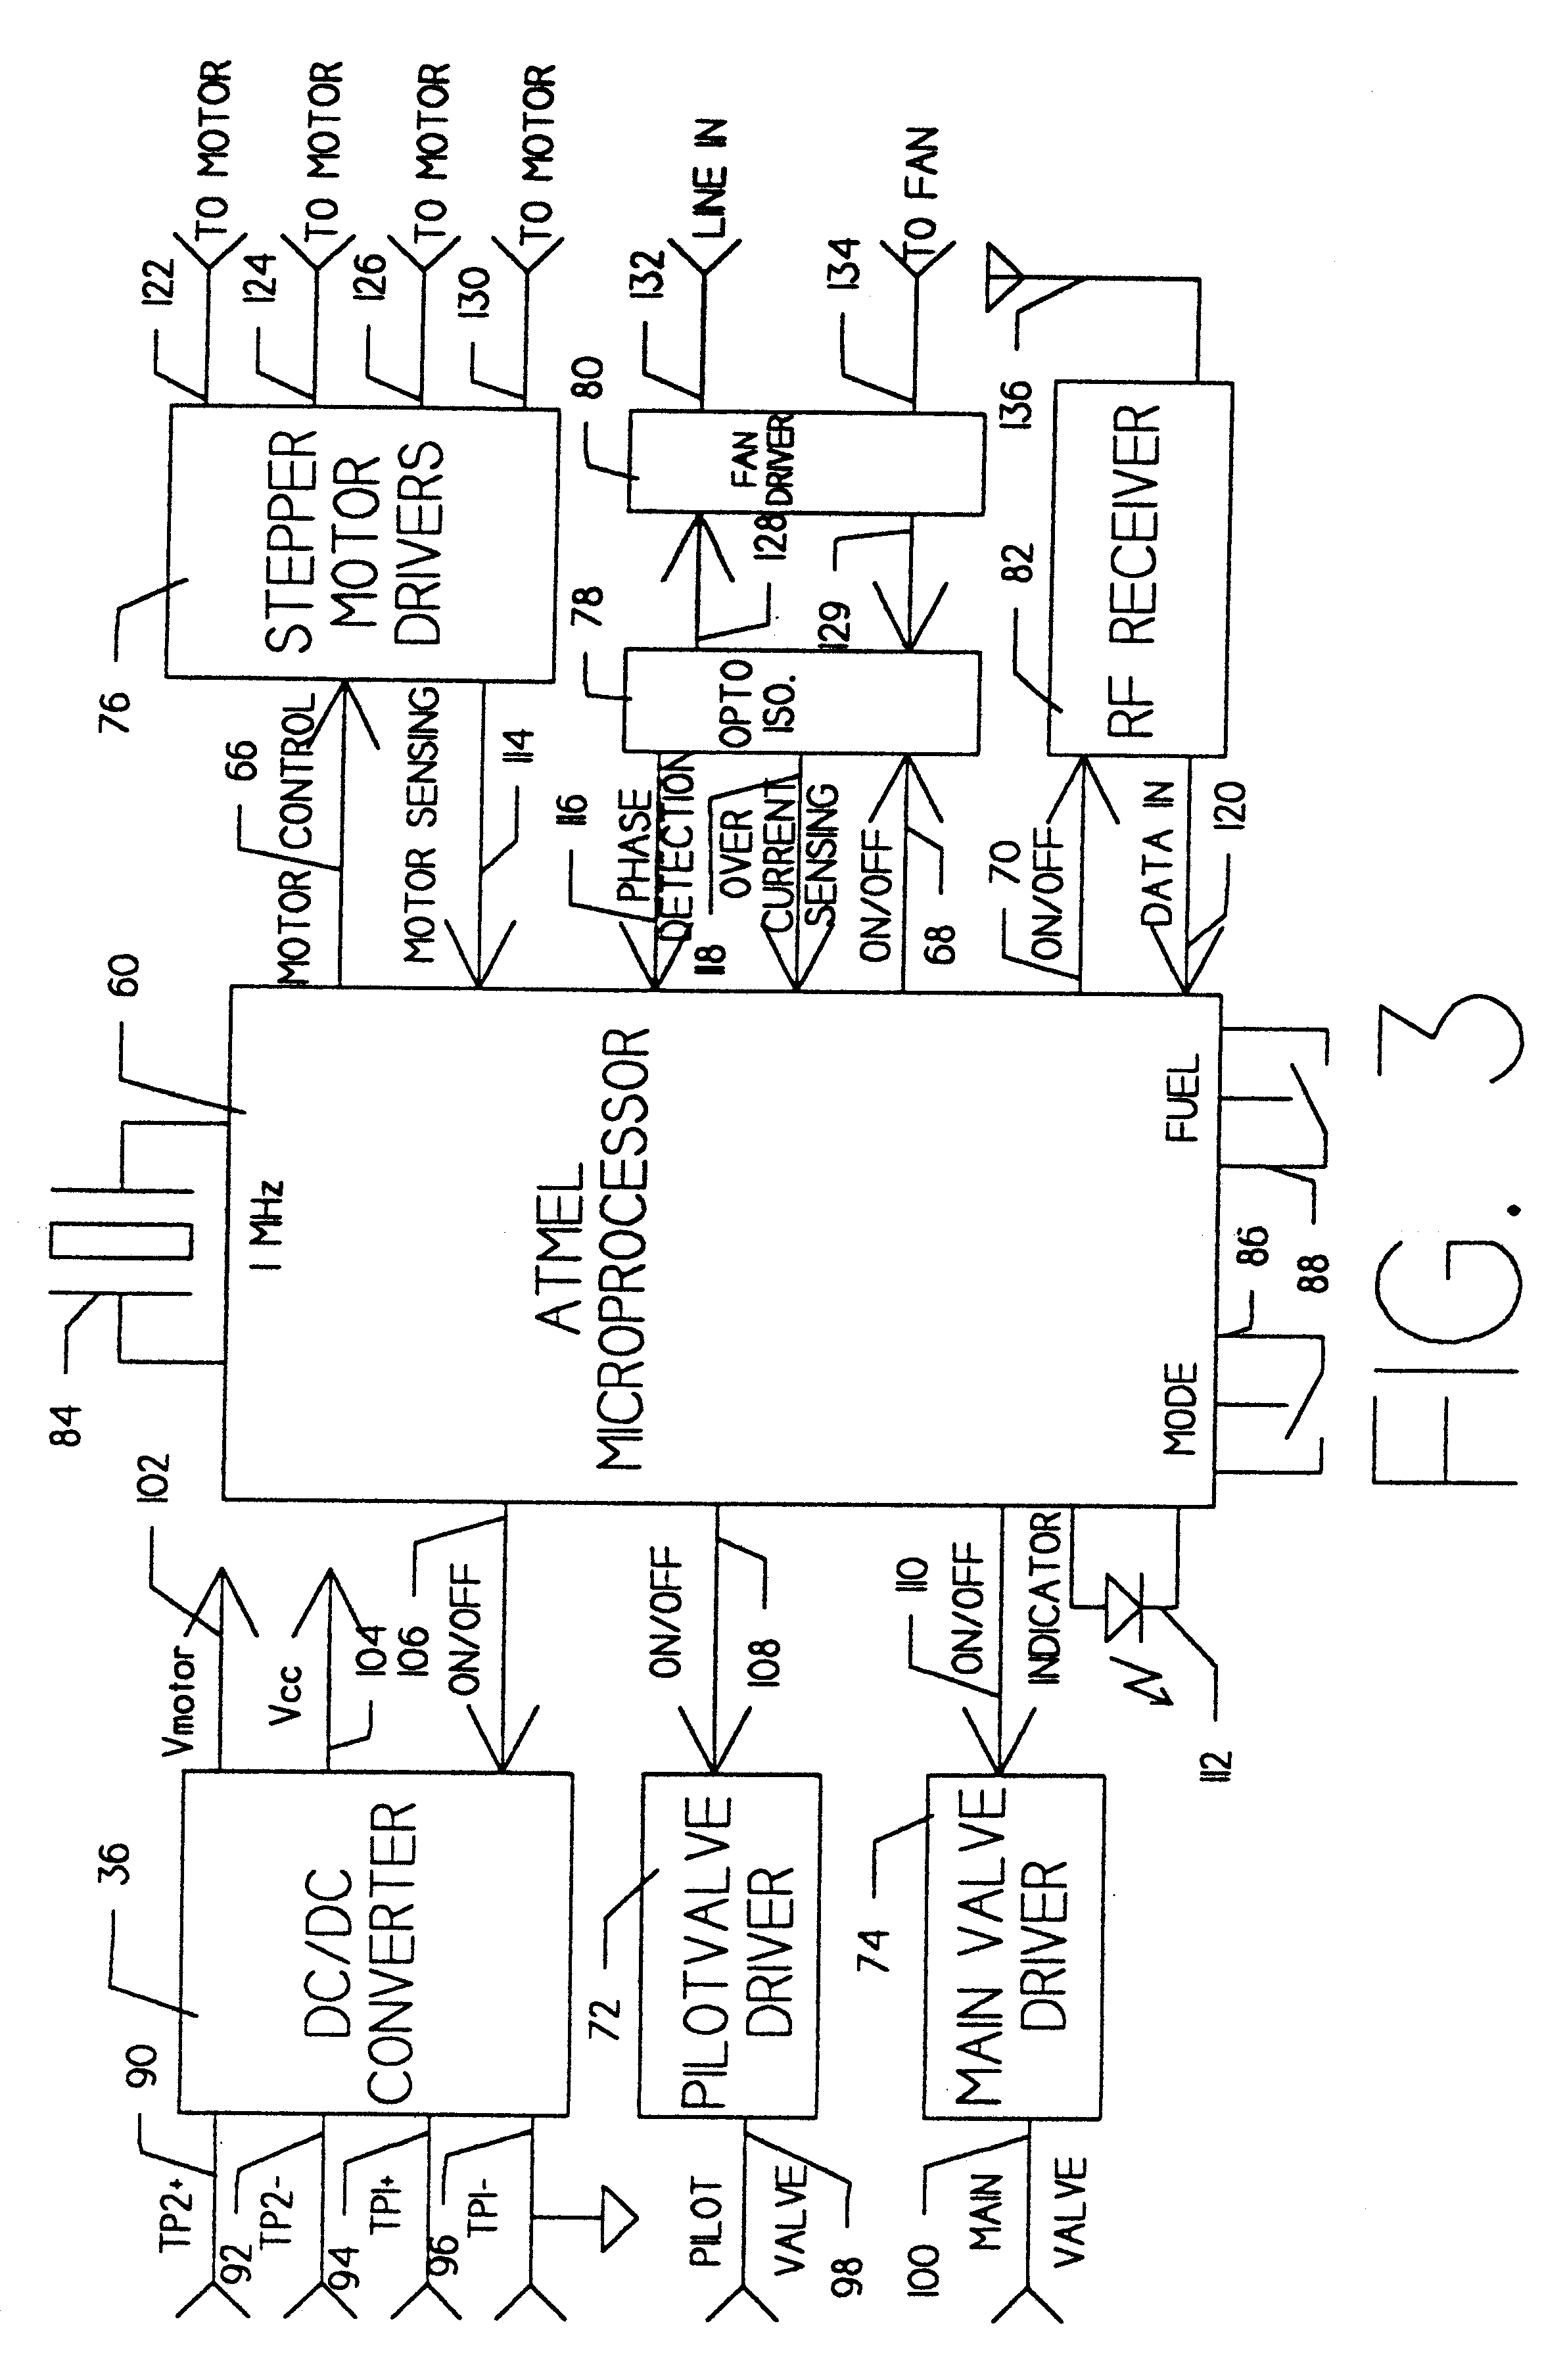 1997 Honda Odyssey Horn Circuit Diagram further Print likewise P 0900c15280087a8a also Basic Motor Control Wiring Diagram additionally P 0900c152800ad9ee. on electronic fuel control actuator circuit